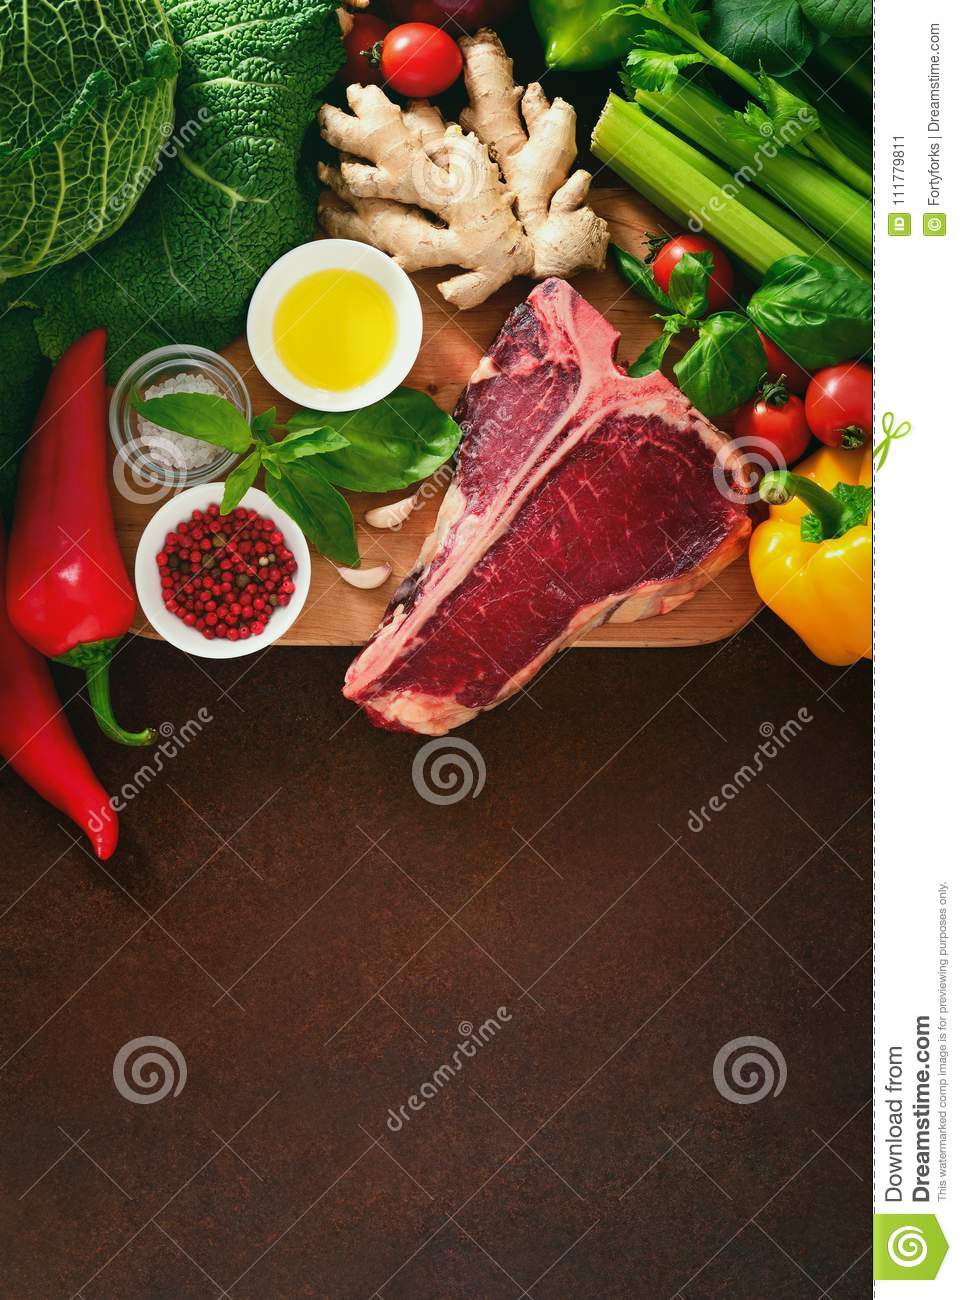 Culinary background with fresh vegetables and meat